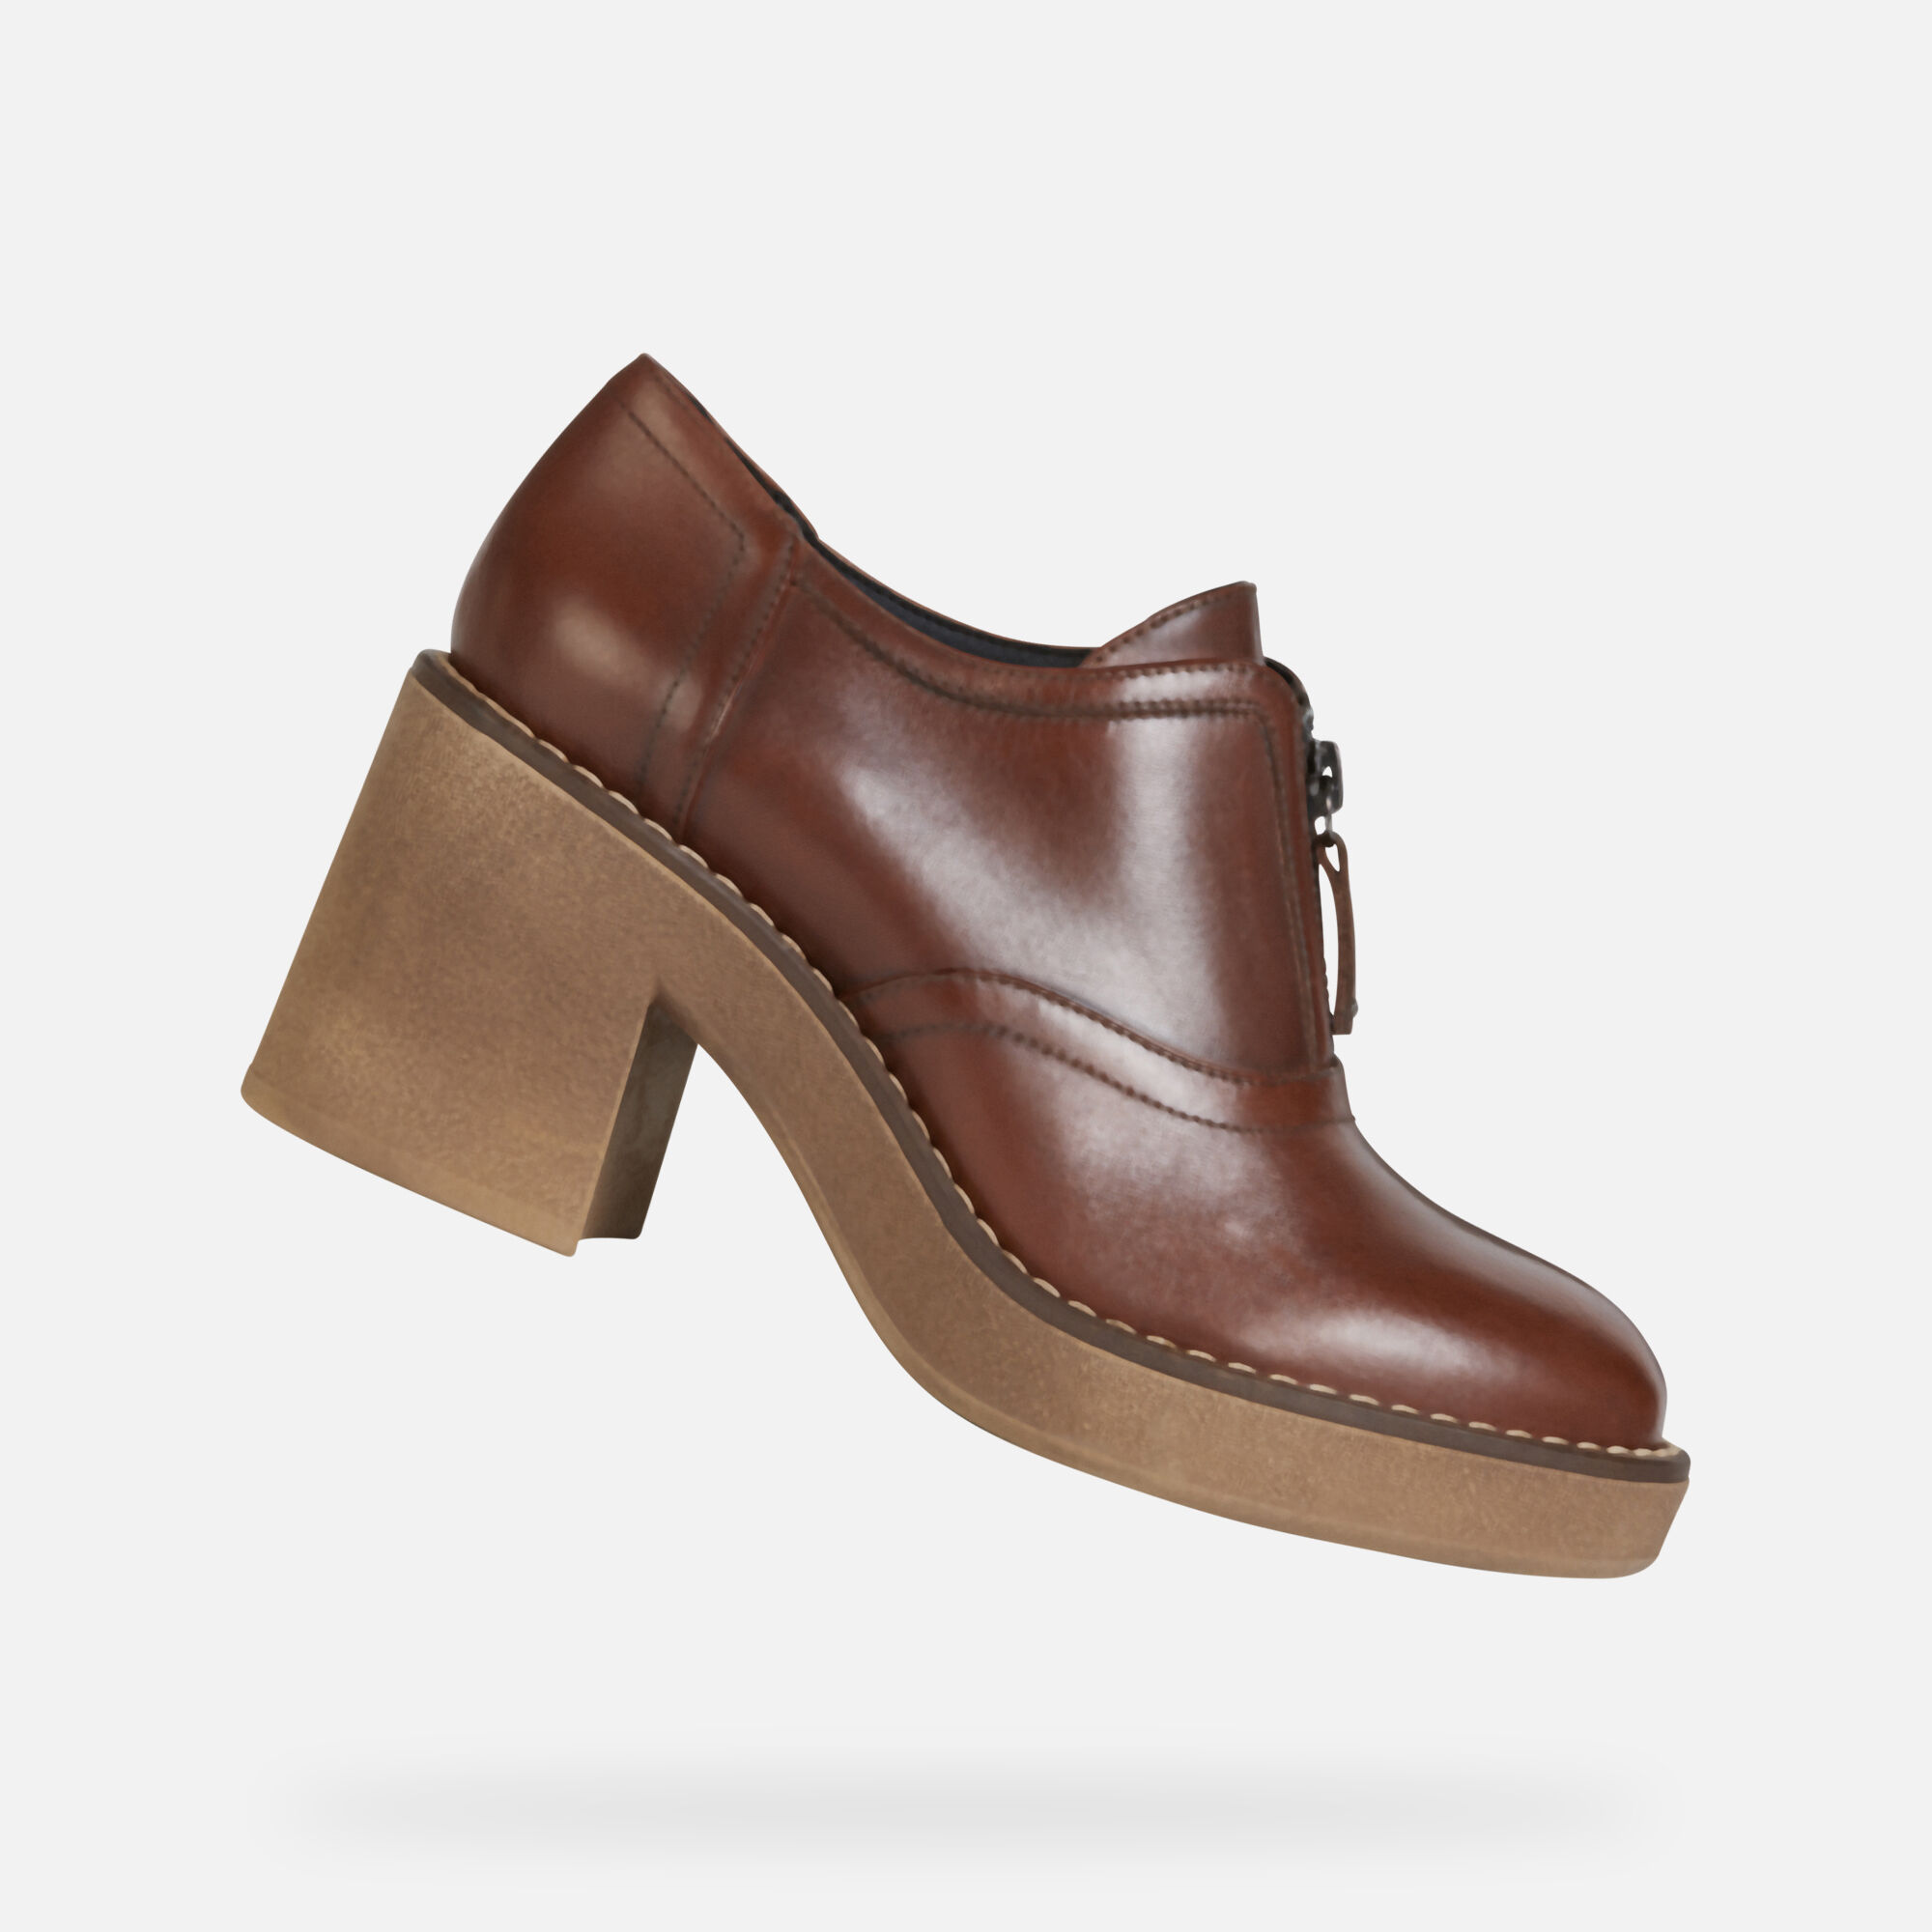 Femme Mid 1920 Chaussures Geox Marrons® Adrya dthrsQ